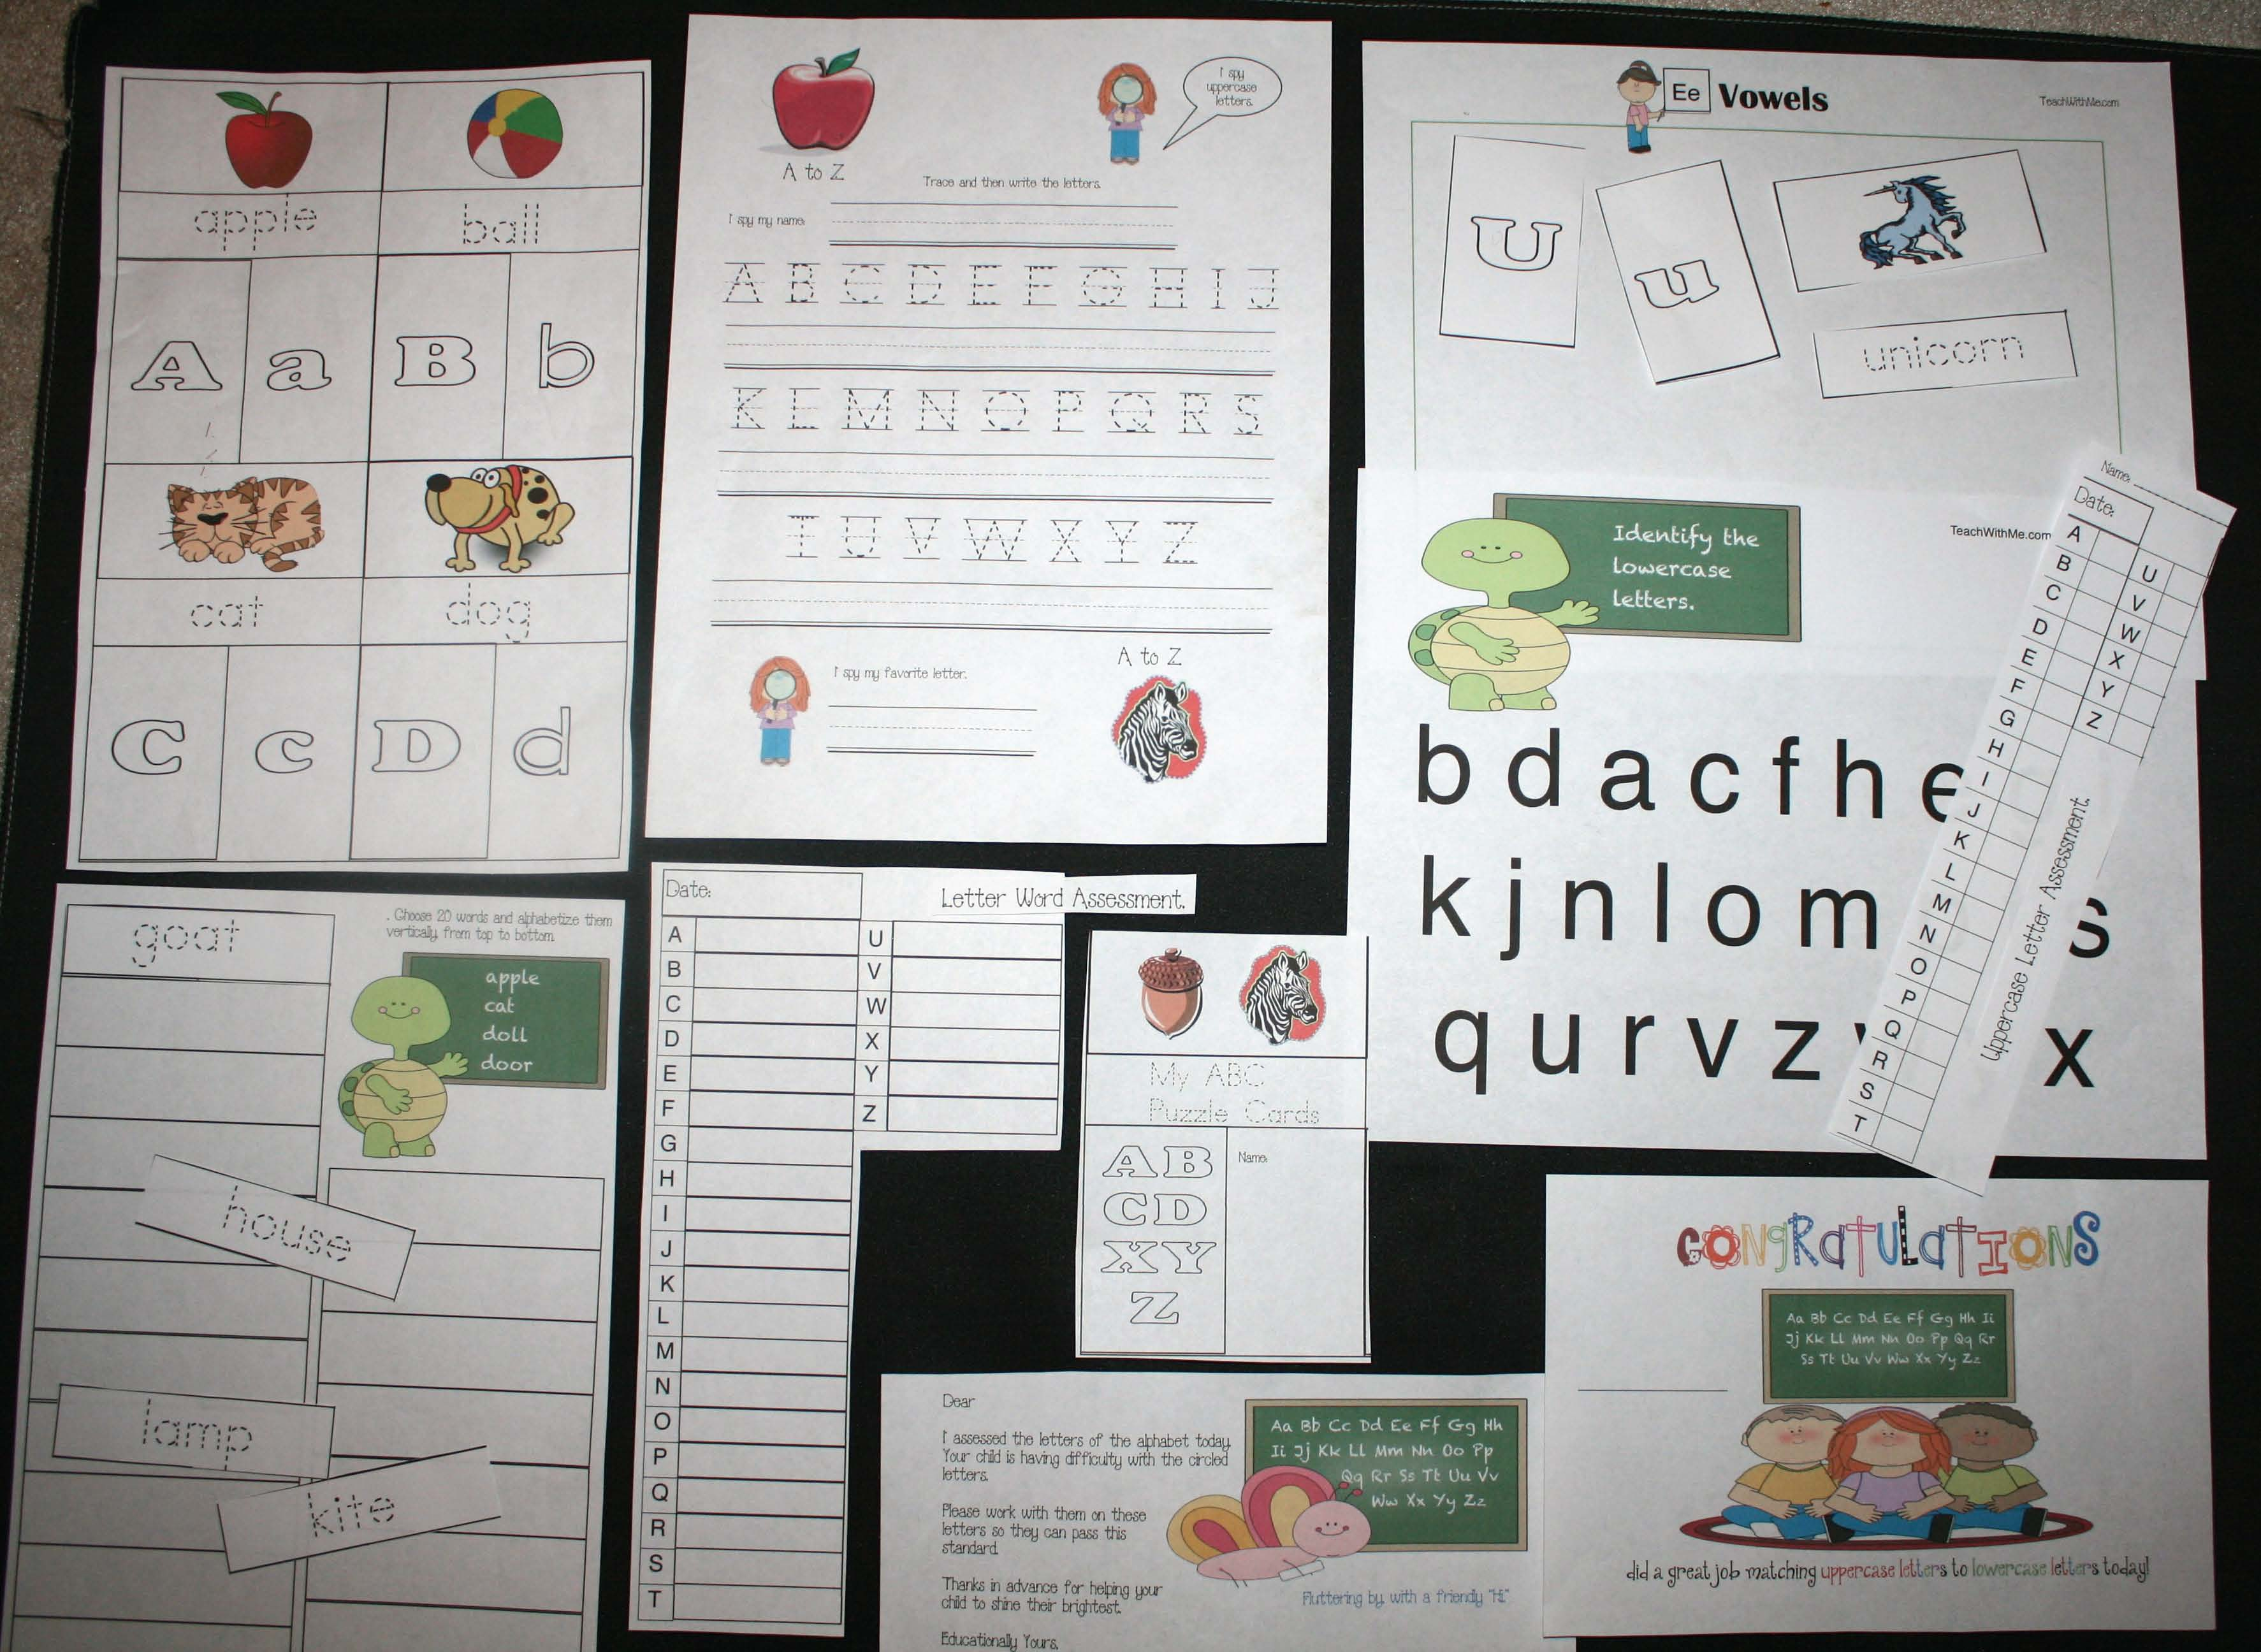 alphabet puzzles, free common core lessons for kindergarten, free common core lessons for 1st grade, alphabet cards, alphabet assessments, common core assessments, alphabet cards, alphabet games, alphabet lessons, matching upper to lowercase letter activities, matching words to their letter activities, Daily 5 activities, Daily 5 word work activities, Dolch Noun Word List, Dolch word puzzle cards, Dolch word activities, Dolch word lessons, alphabet sorting mats, sorting mats,